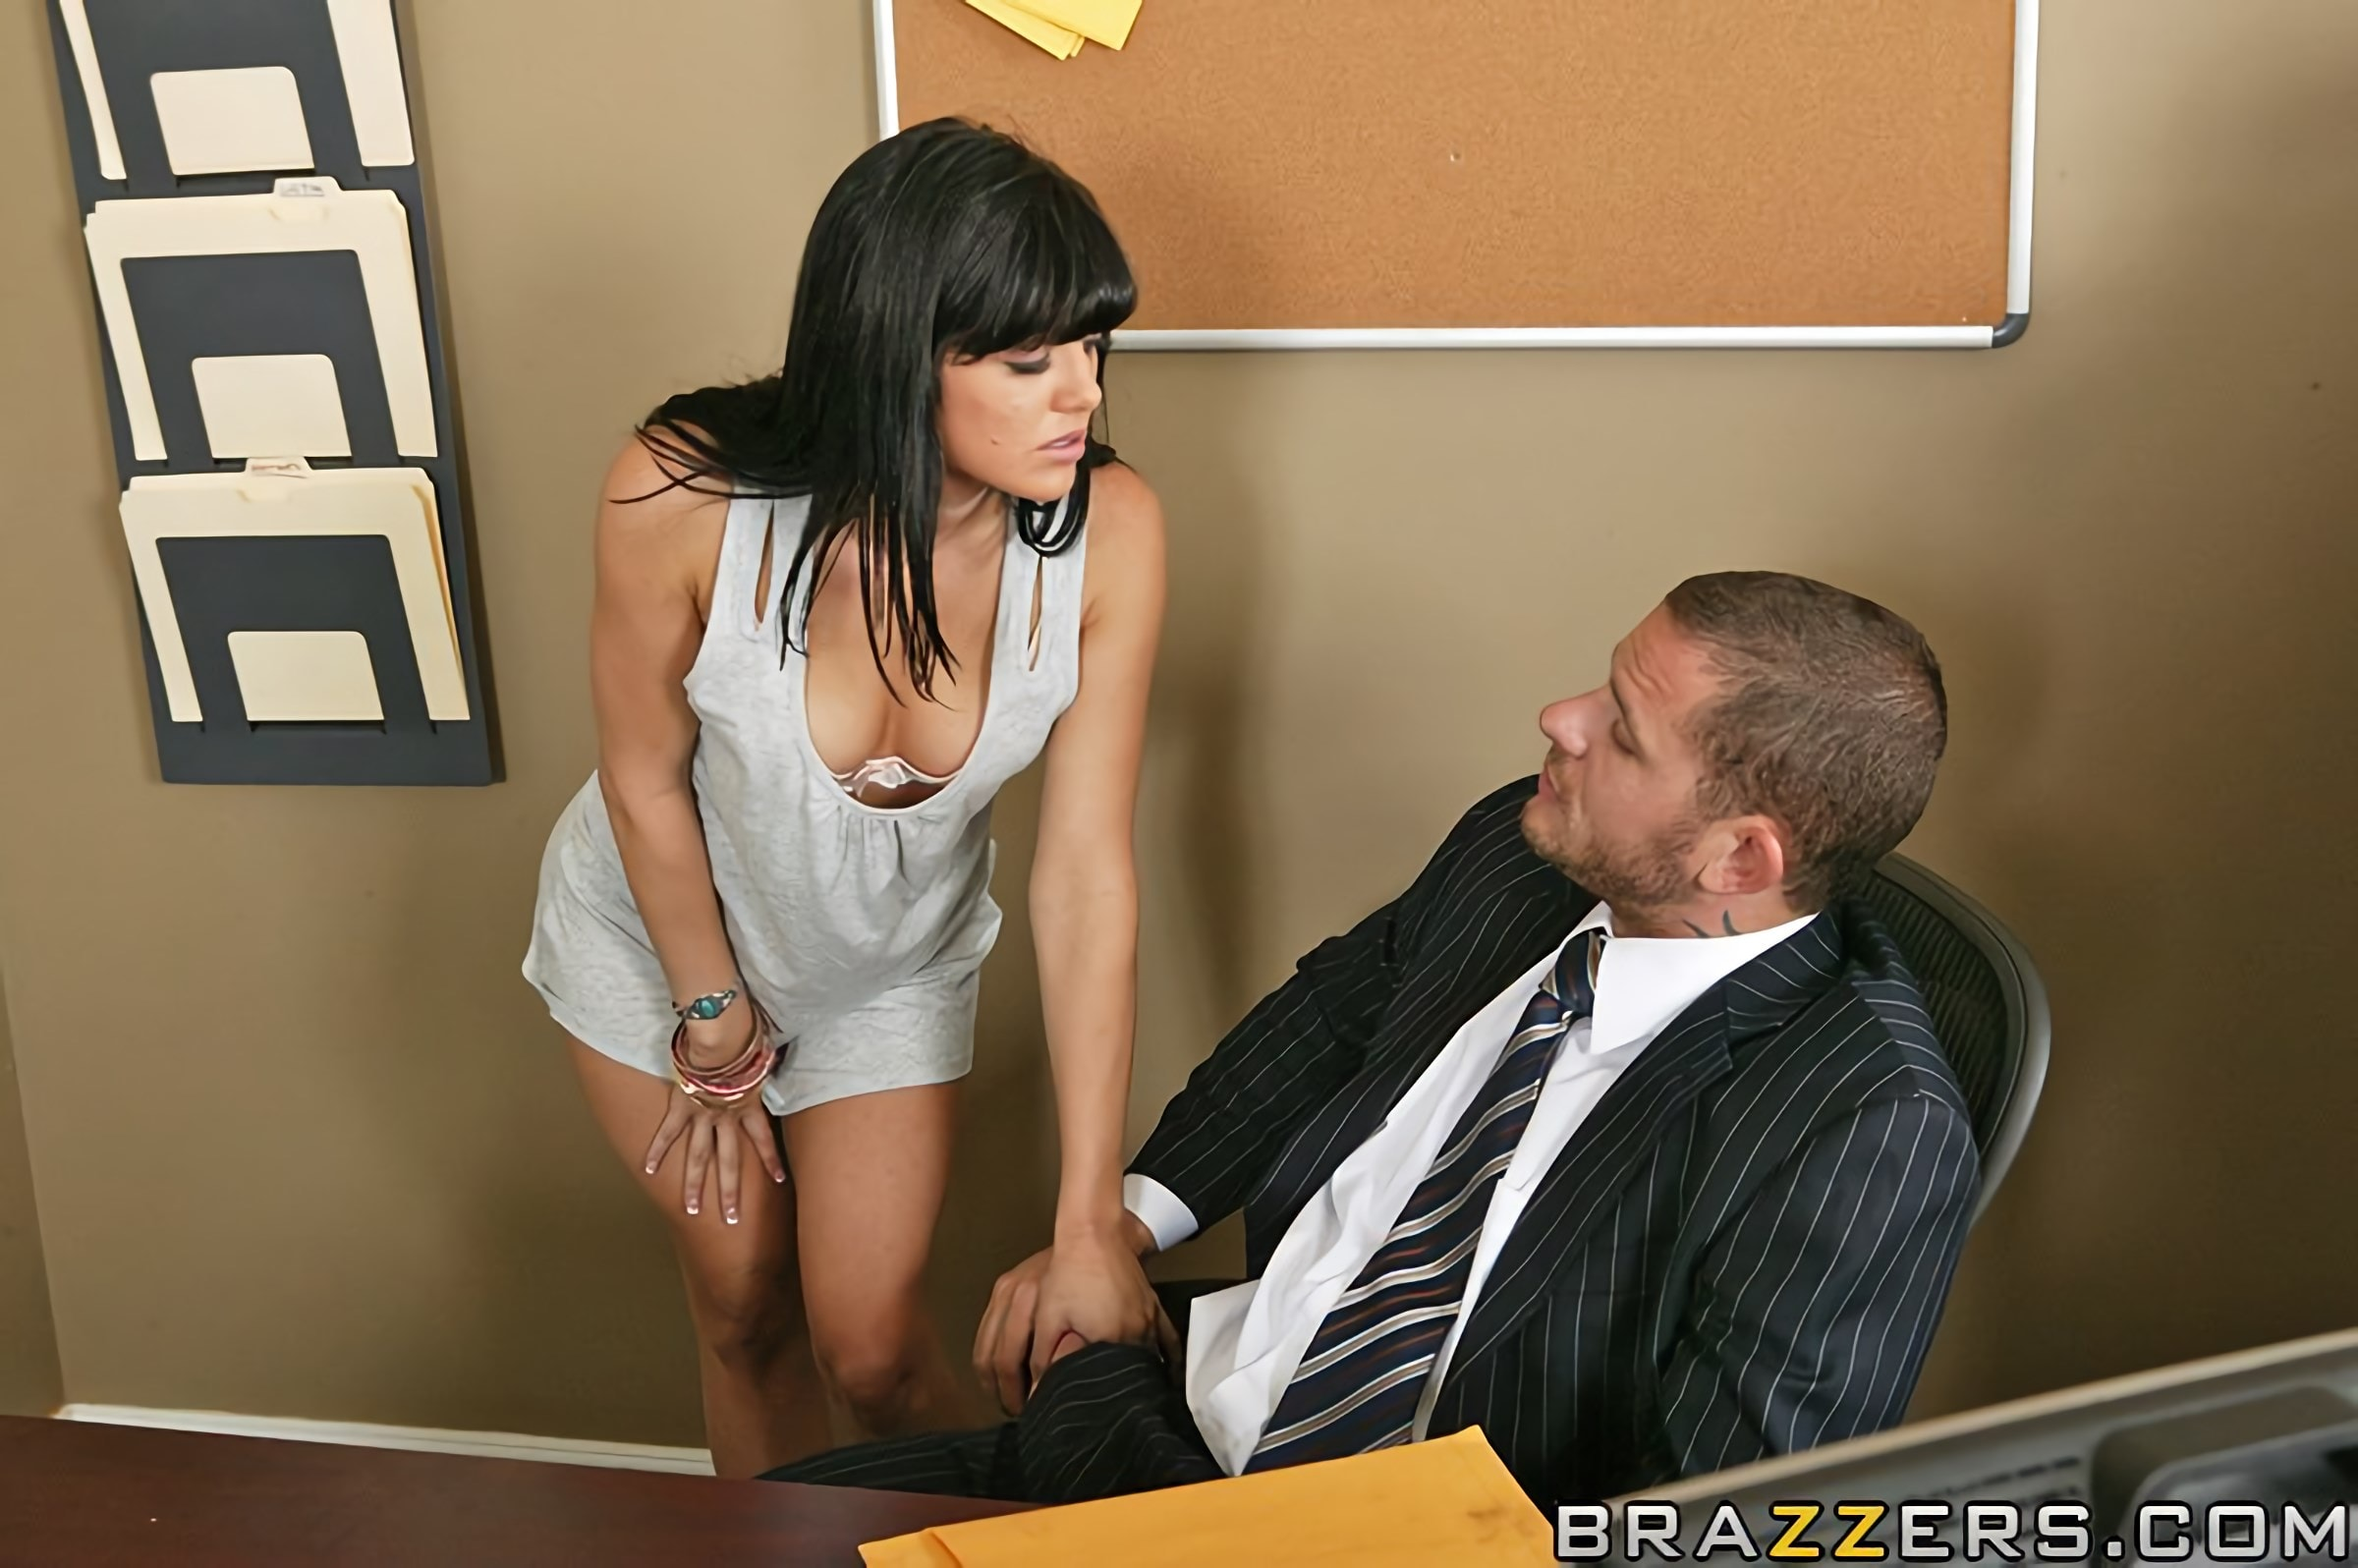 Brazzers 'Sex Detective' starring Sadie West (Photo 5)